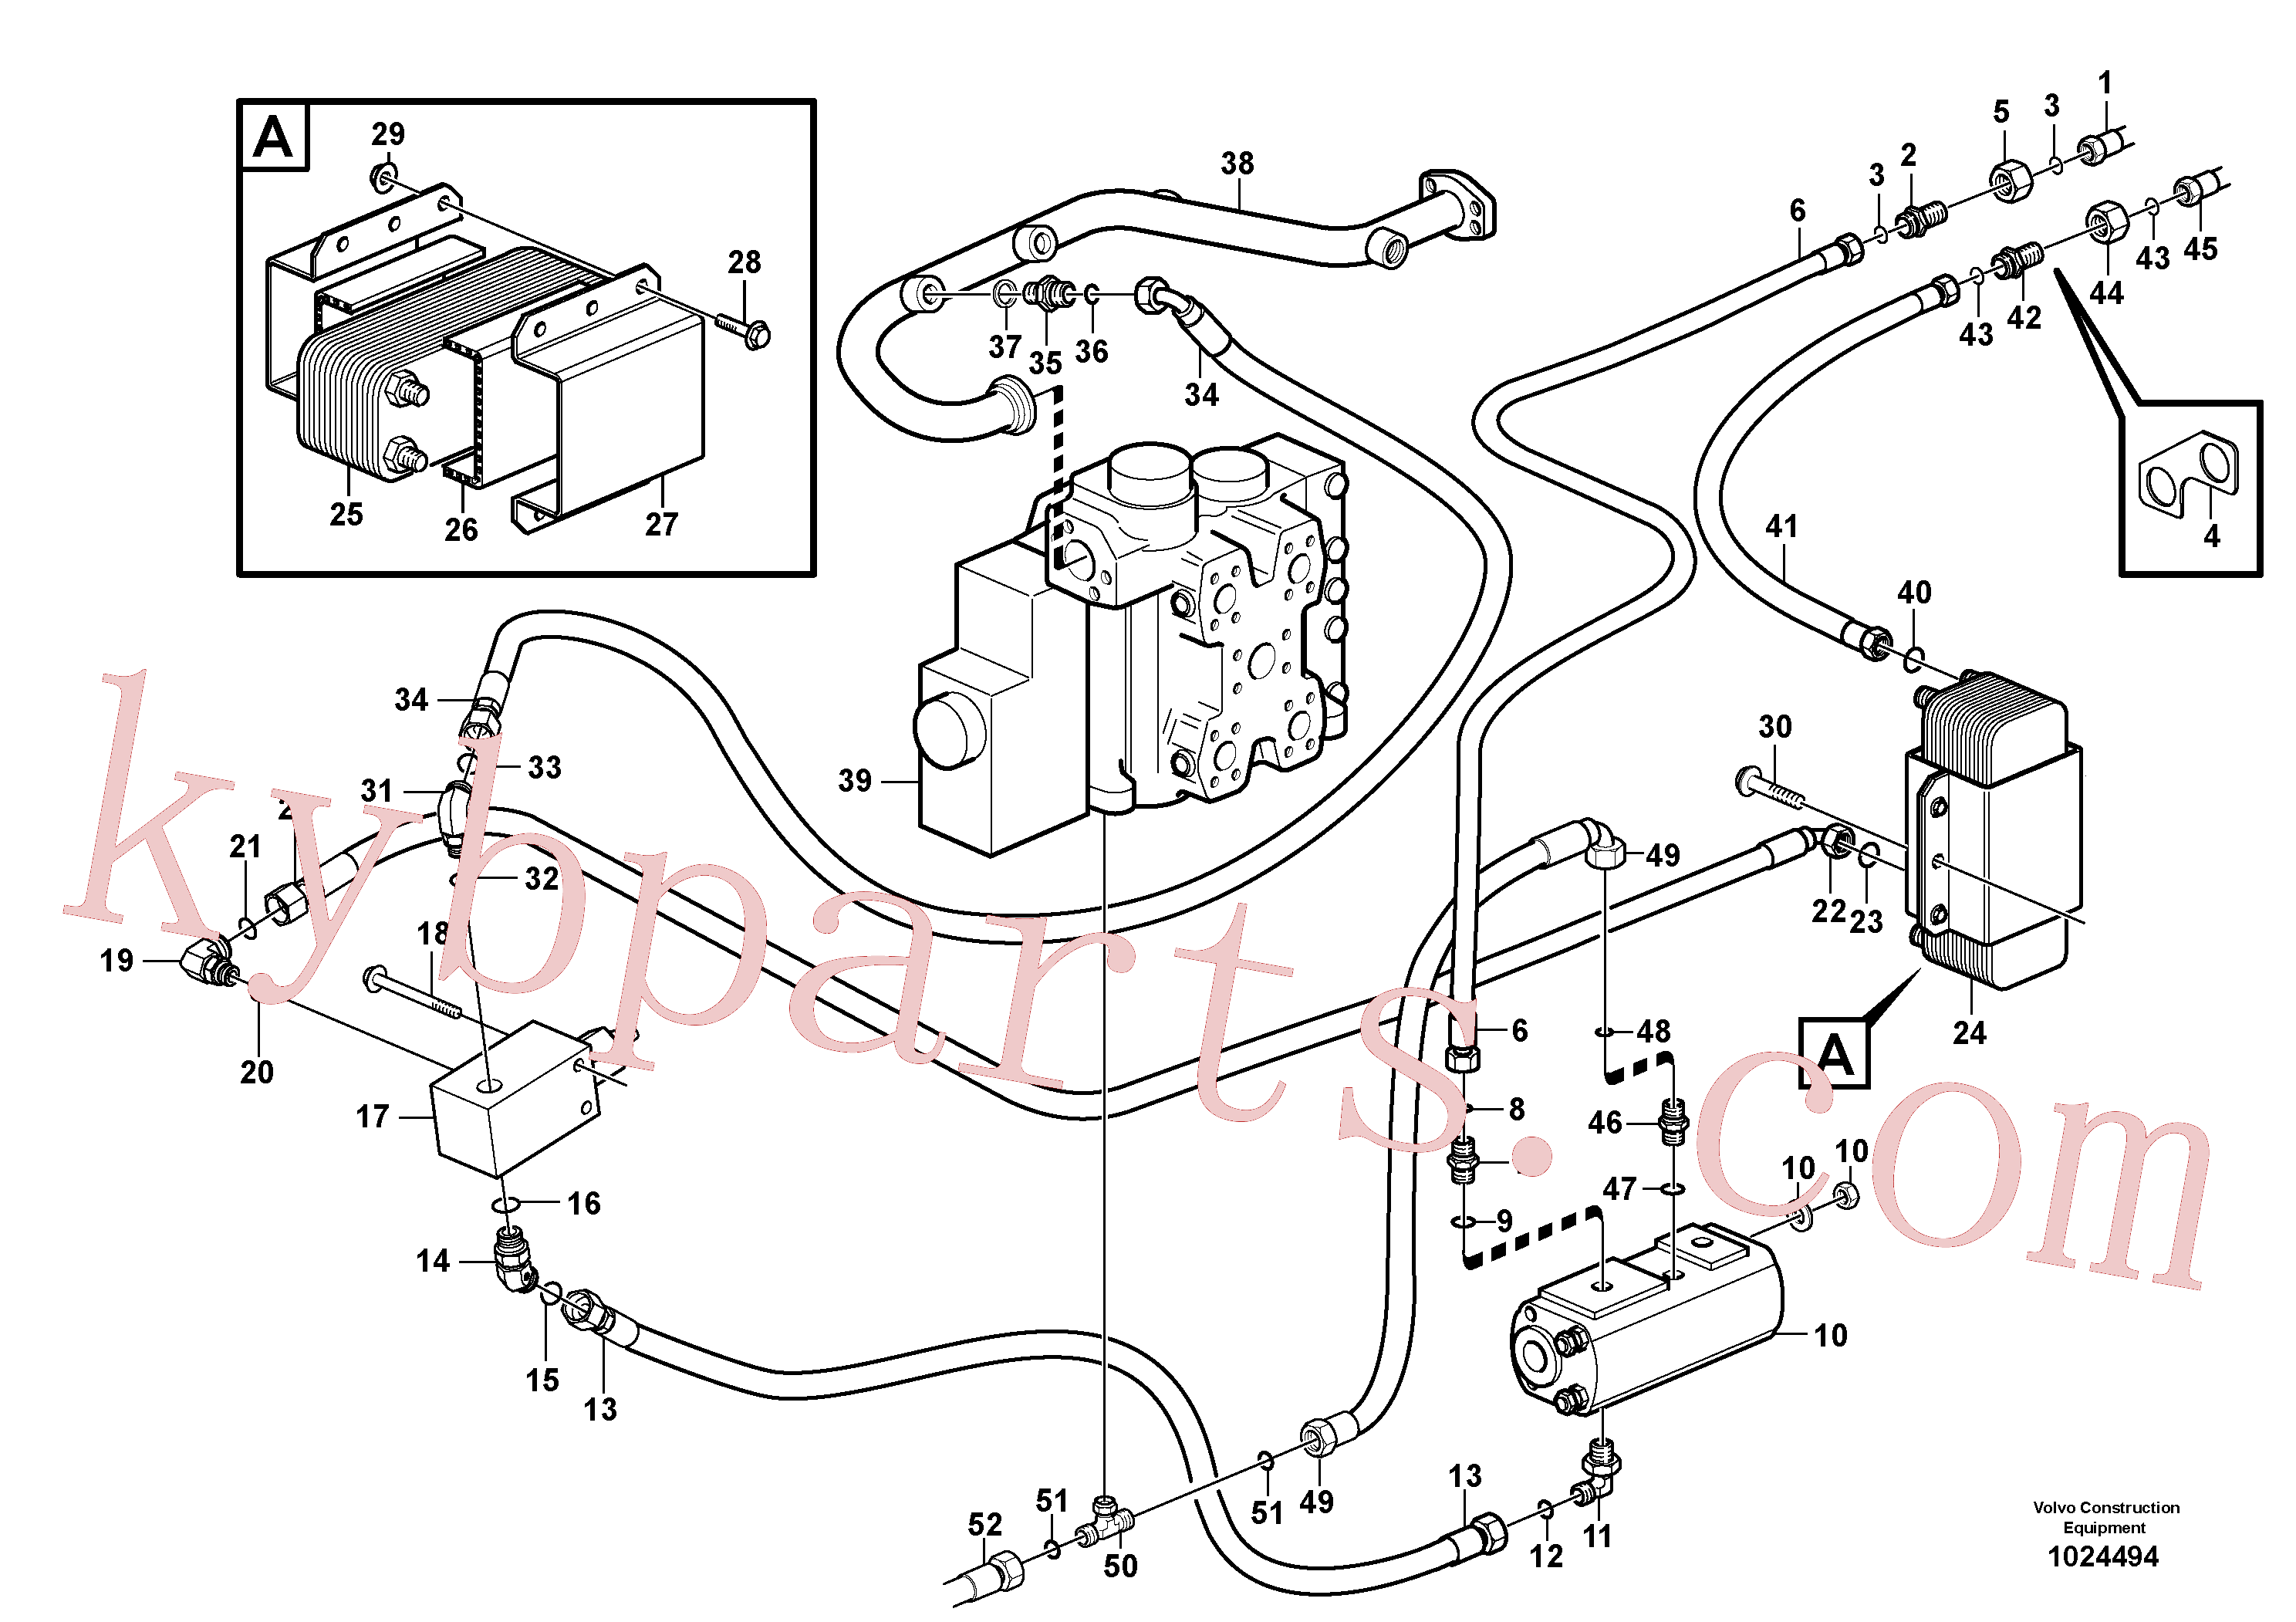 VOE935375 for Volvo Oil cooler, forward, motor circuit.(1024494 assembly)